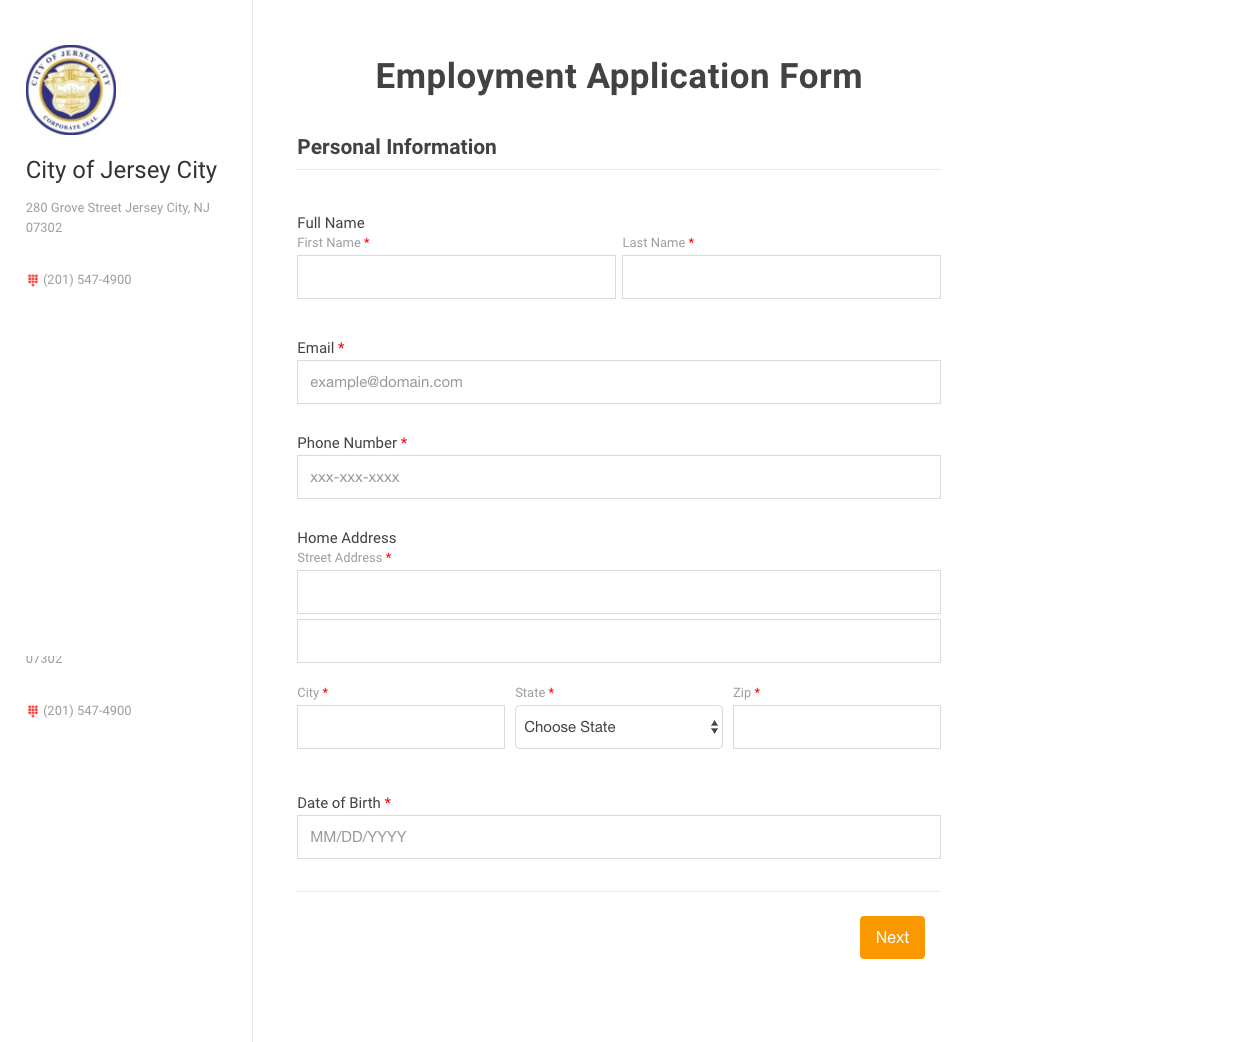 Note: These Forms Are Public. Please Do Not Press Submit.